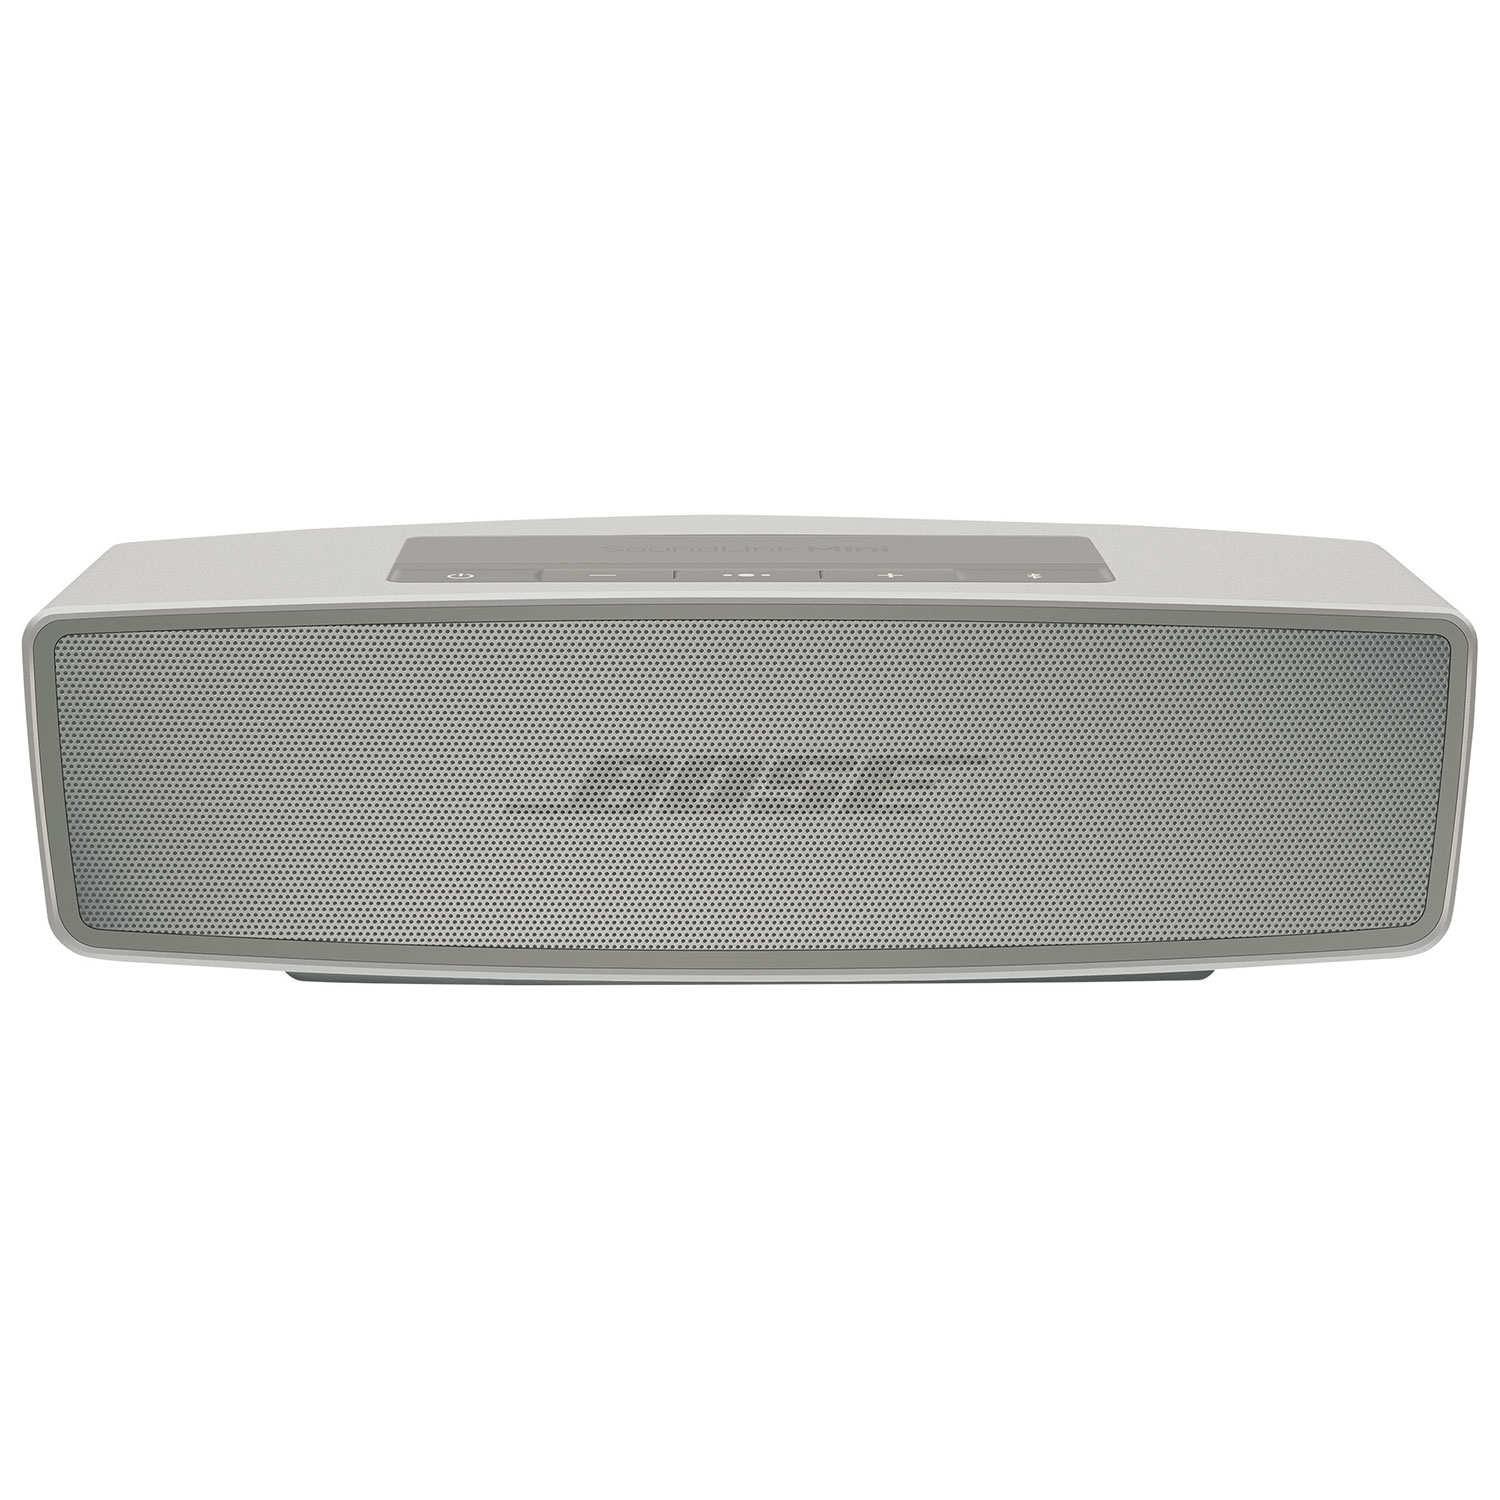 bose swot analysis Bose corporation - strategic swot analysis review bose corporation - strategic swot analysis review - provides a comprehensive insight into the company's history.